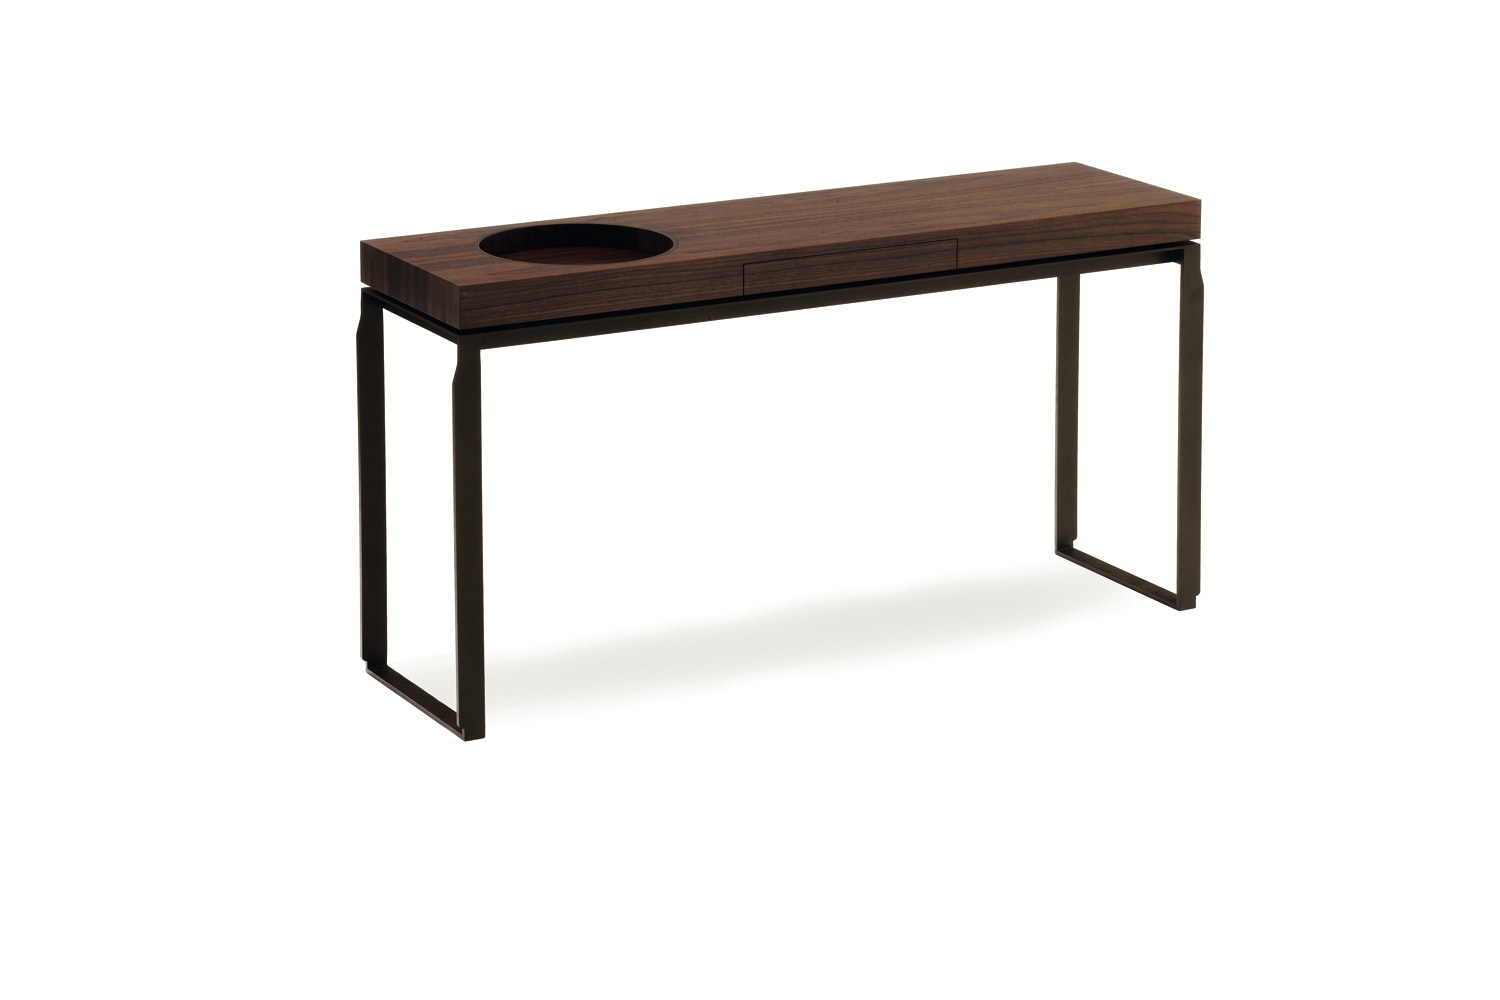 Aei Console Table by Chi Wing Lo for Giorgetti